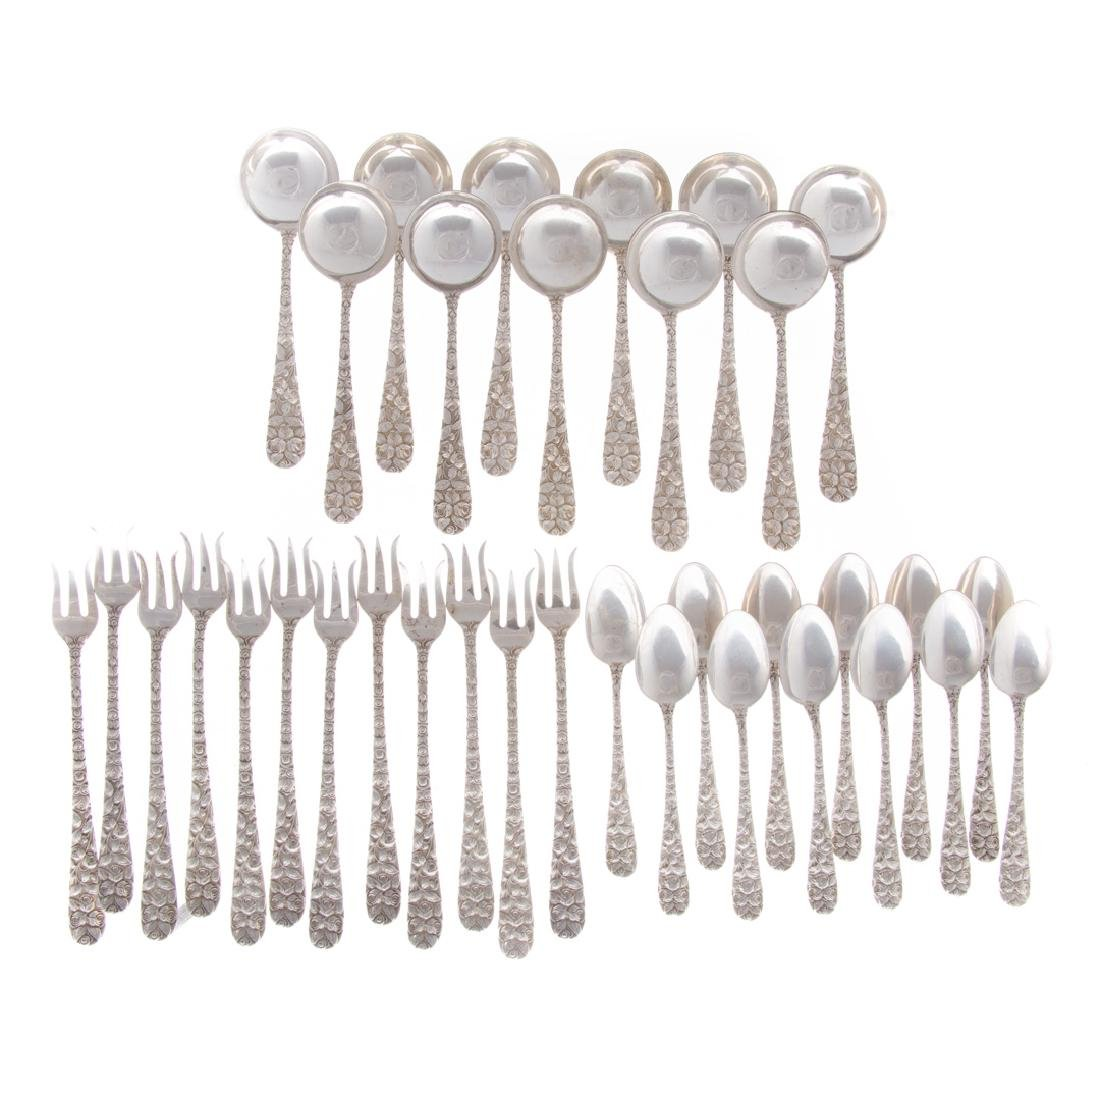 Hand Chased Rose sterling flatware by Schofield